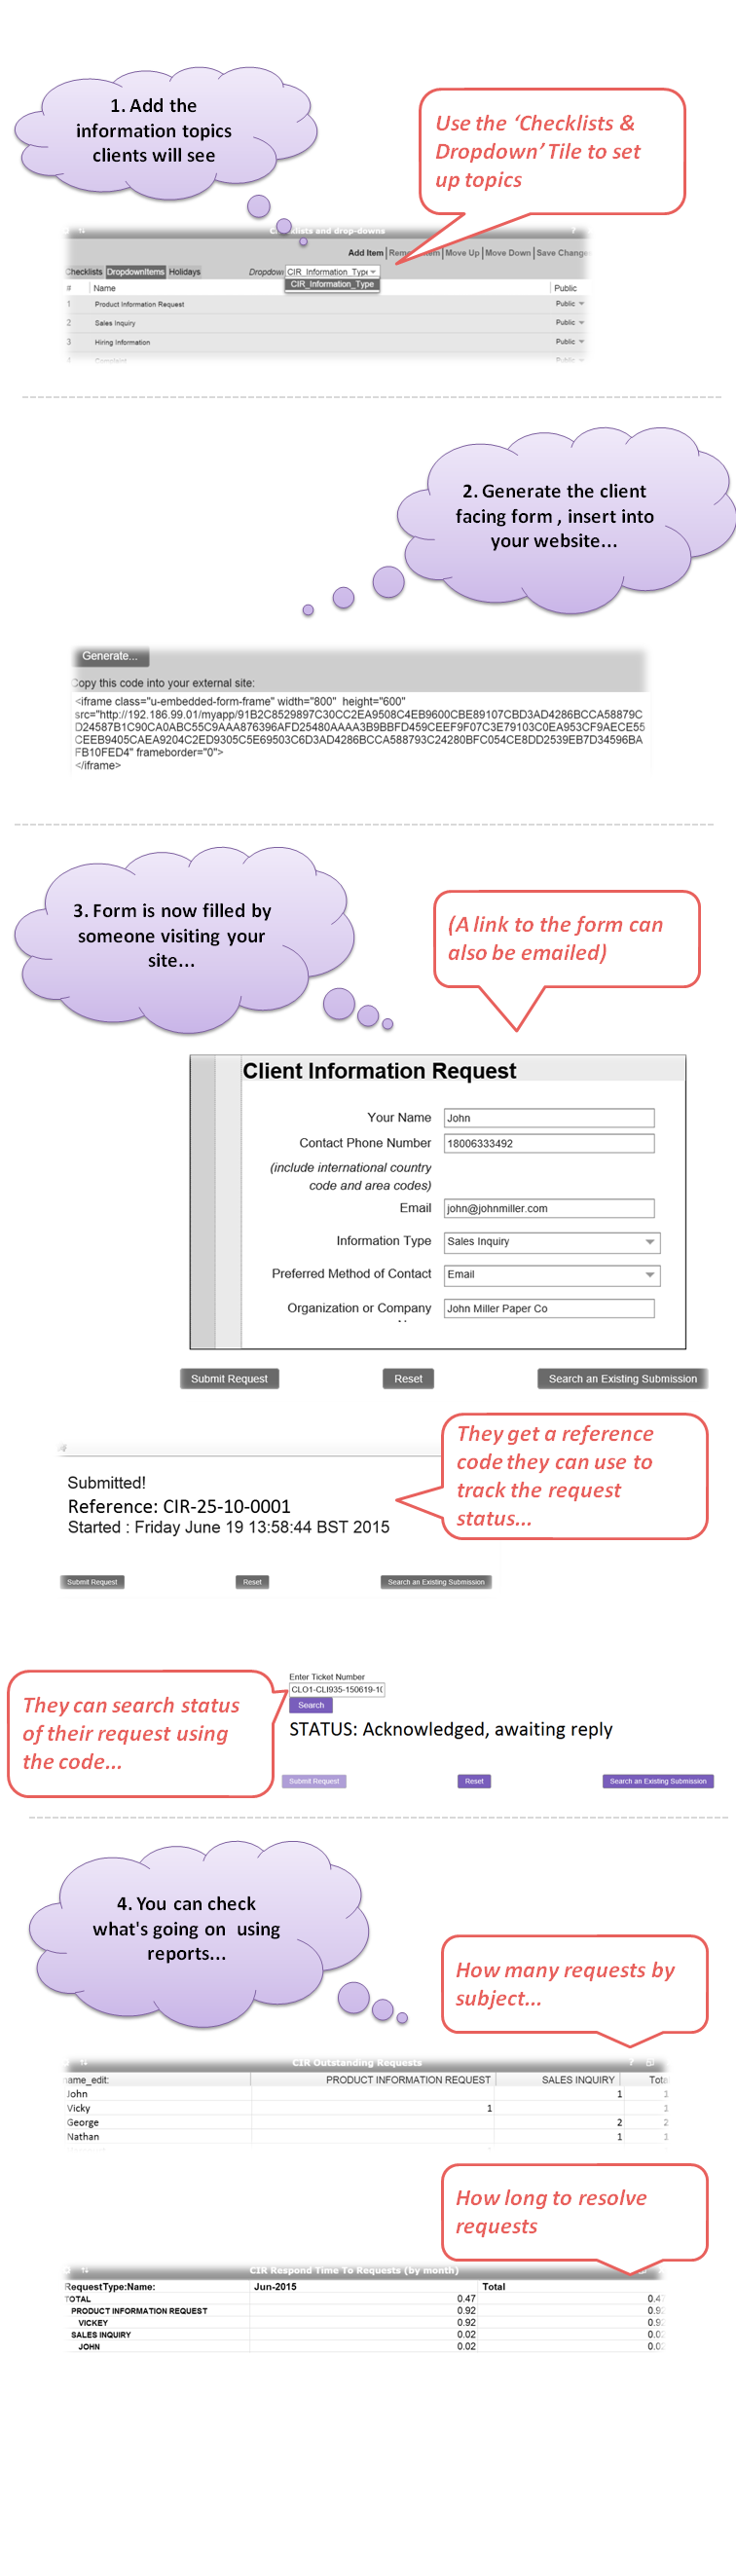 What does Client Information Request do3